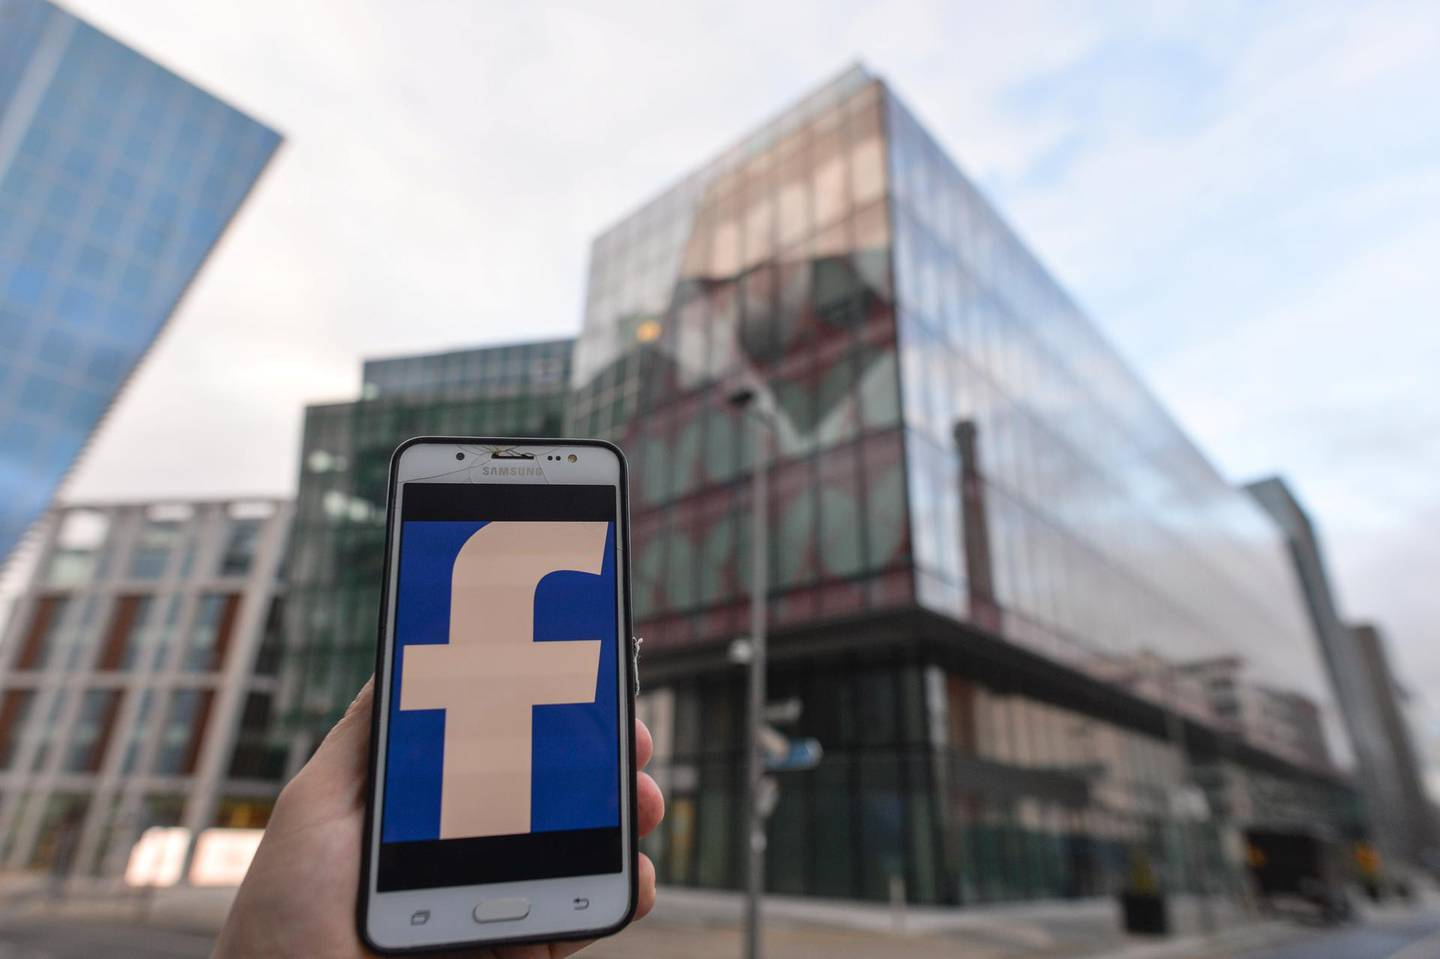 Facebook logo displayed on a mobile phone in front of Facebook EMEA headquarters on Grand Canal Square in Dublin Docklands. On Friday, 29 January, 2021, in Dublin, Ireland. (Photo by Artur Widak/NurPhoto via Getty Images)